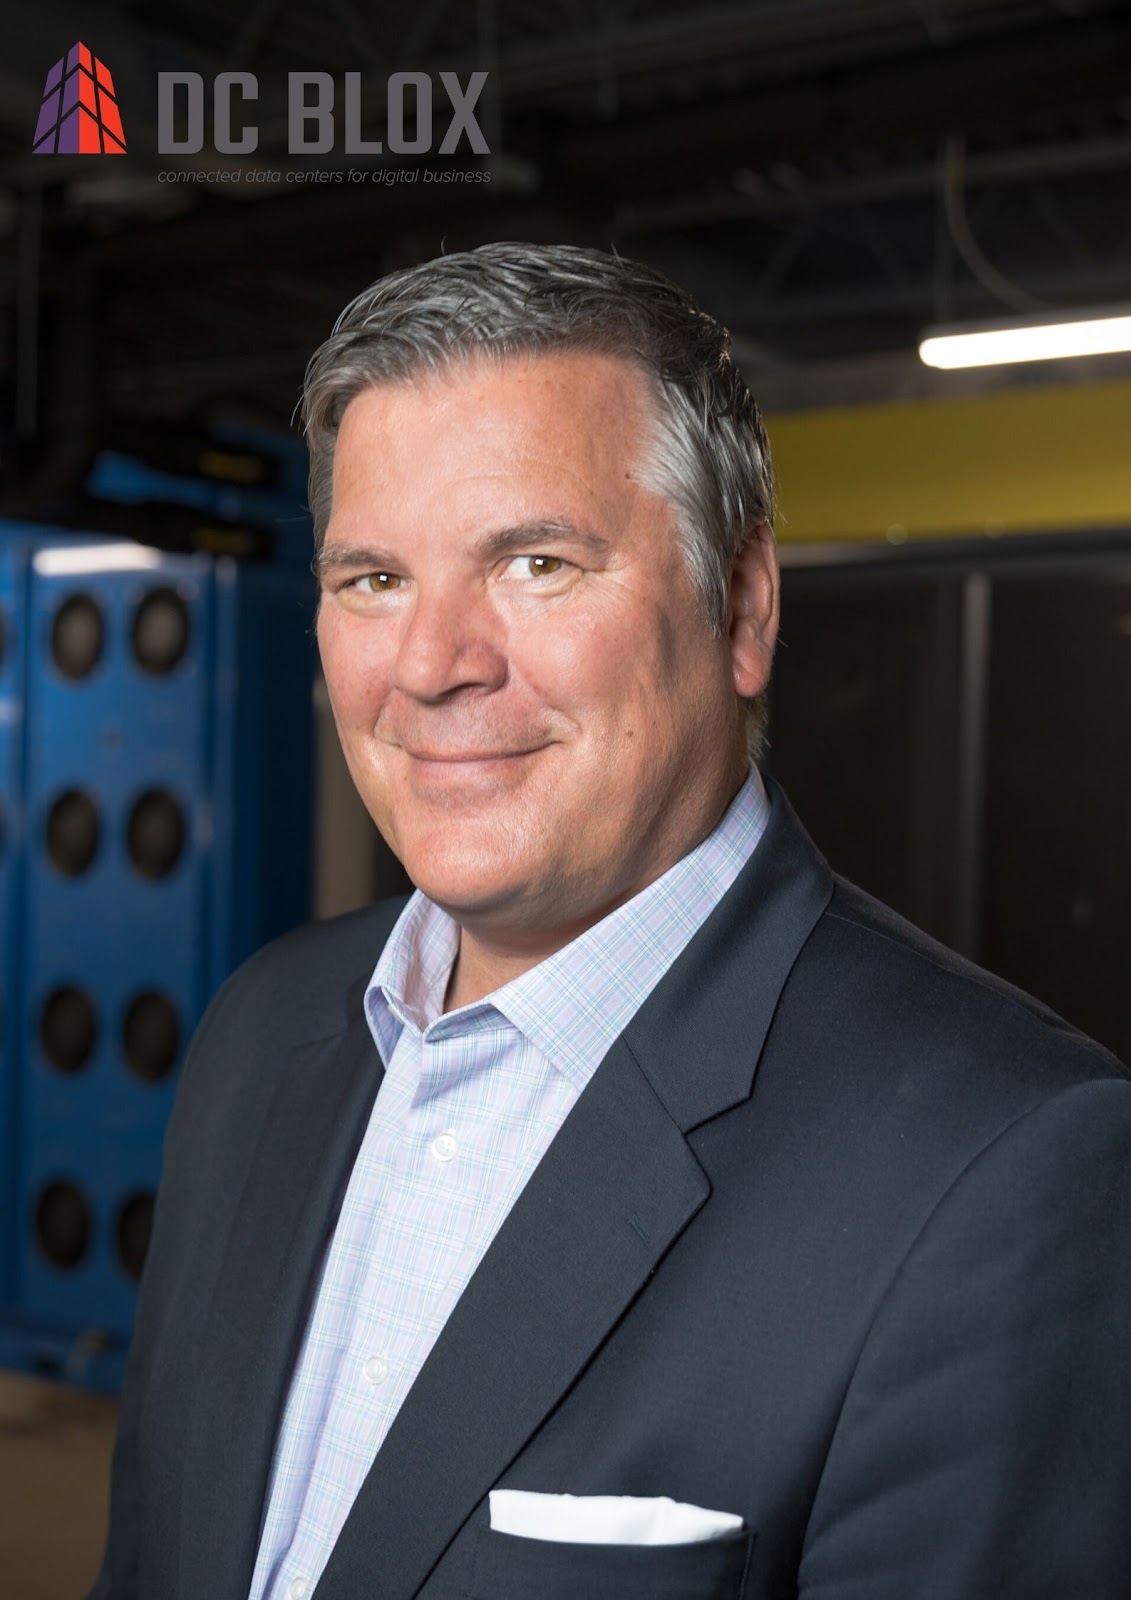 DC BLOX's CEO, Jeff Uphues